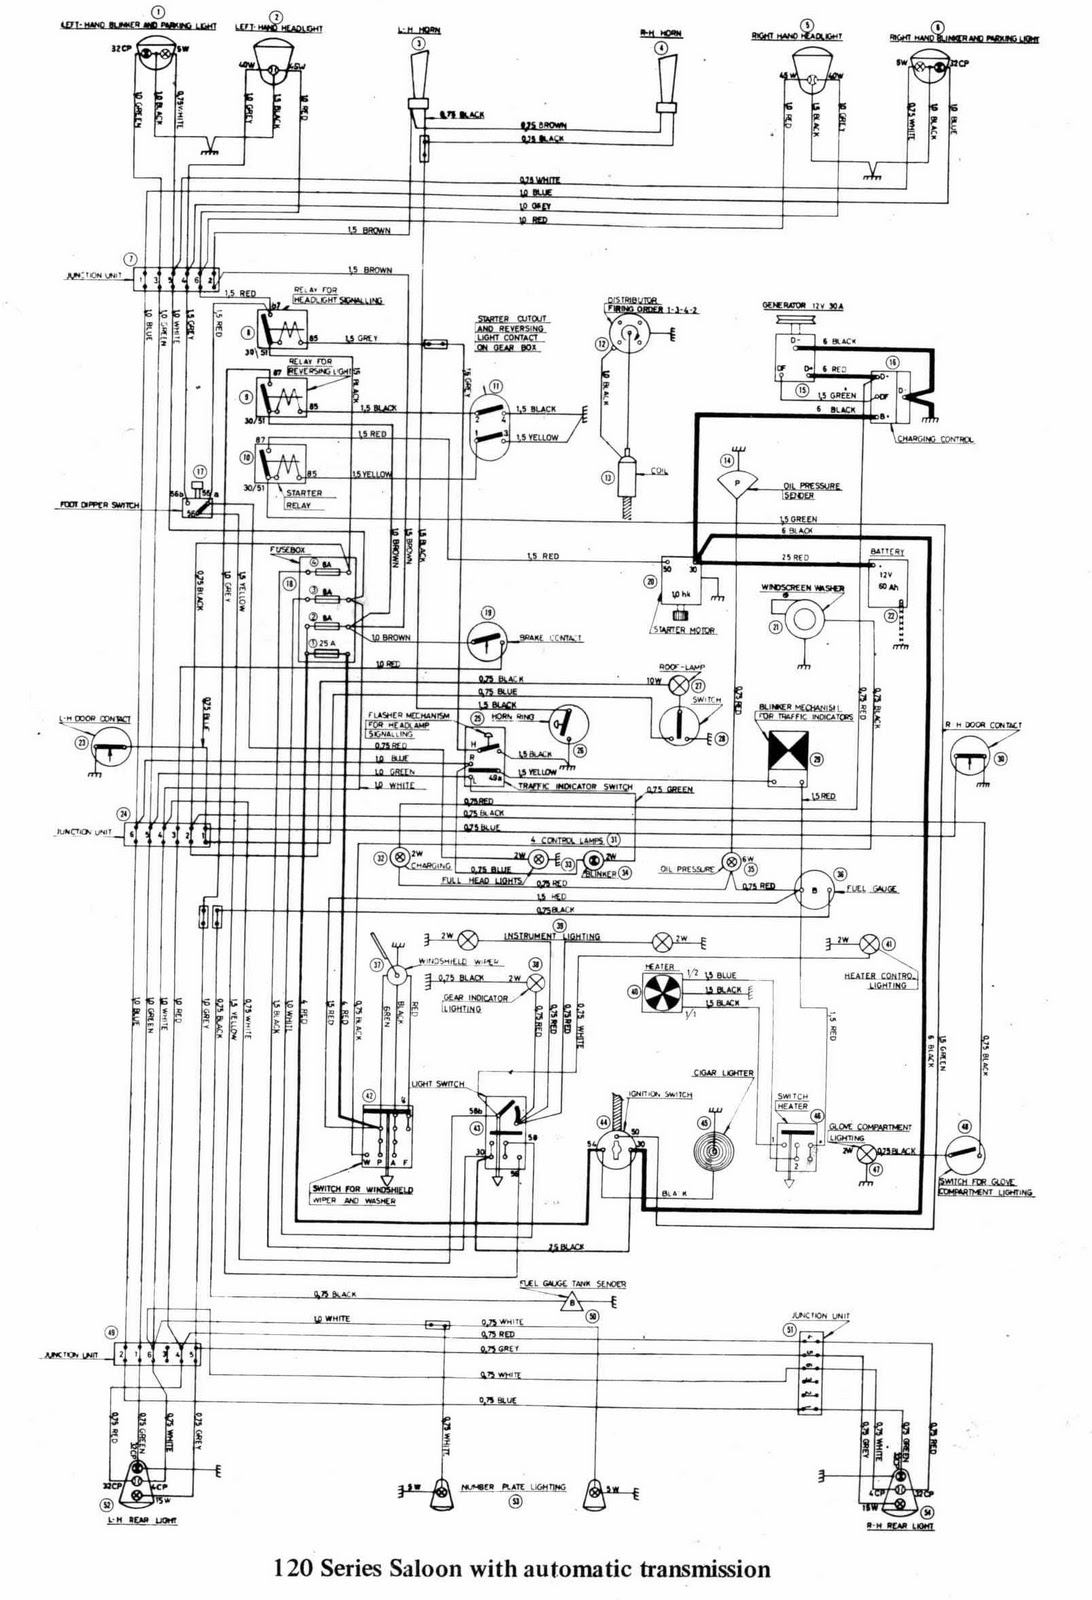 Amazing Volvo Ec140B Wiring Diagram Wiring Diagram Data Wiring Cloud Hisonuggs Outletorg